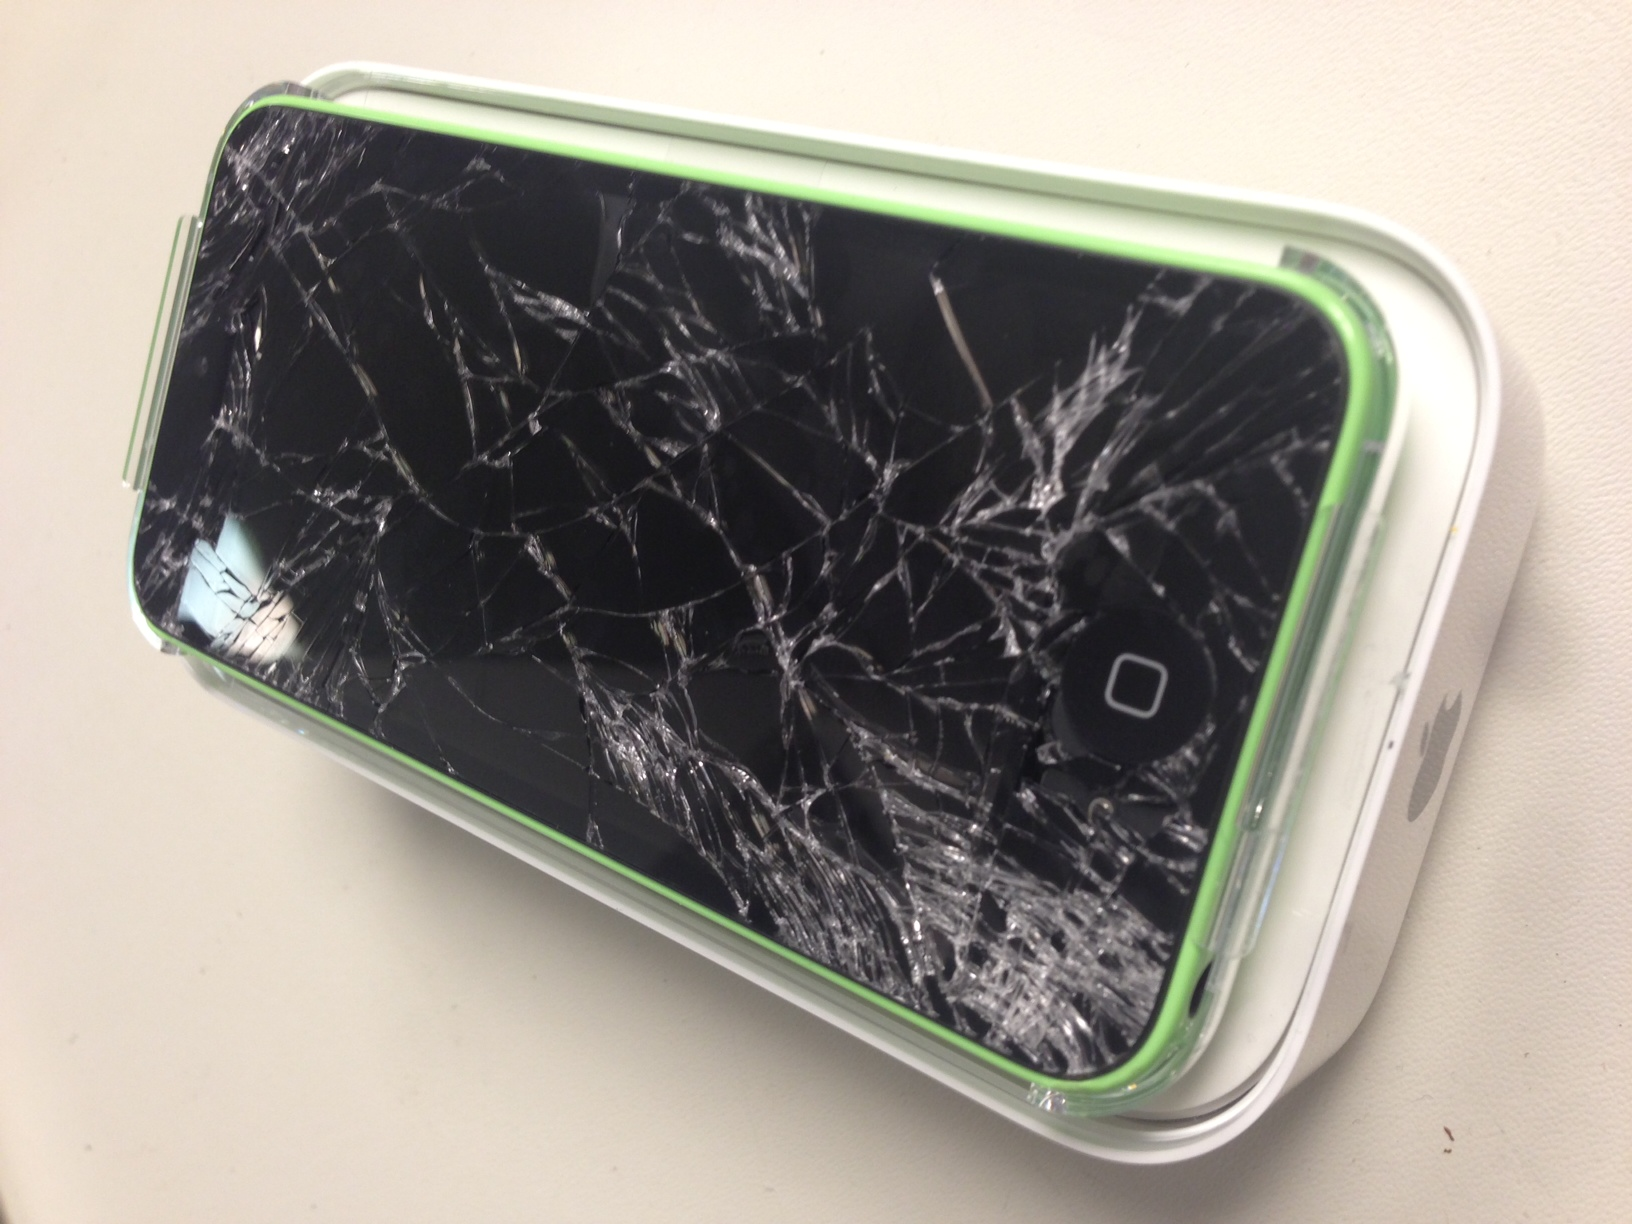 The iPhone 5C: How high did it take to break?